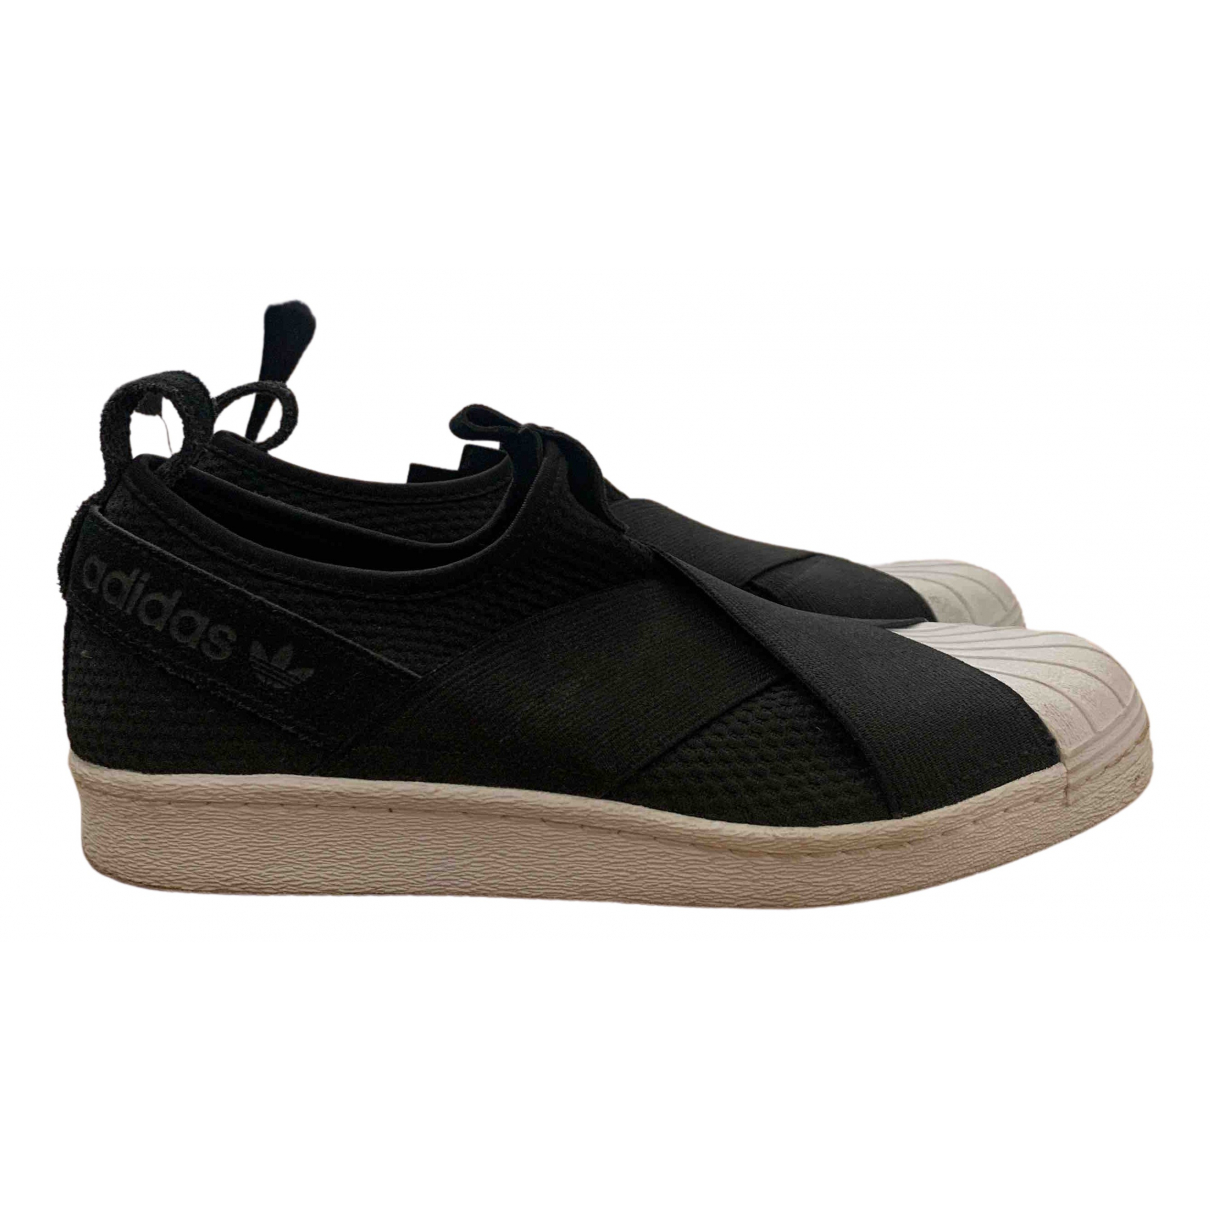 Adidas N Black Trainers for Women 40.5 EU